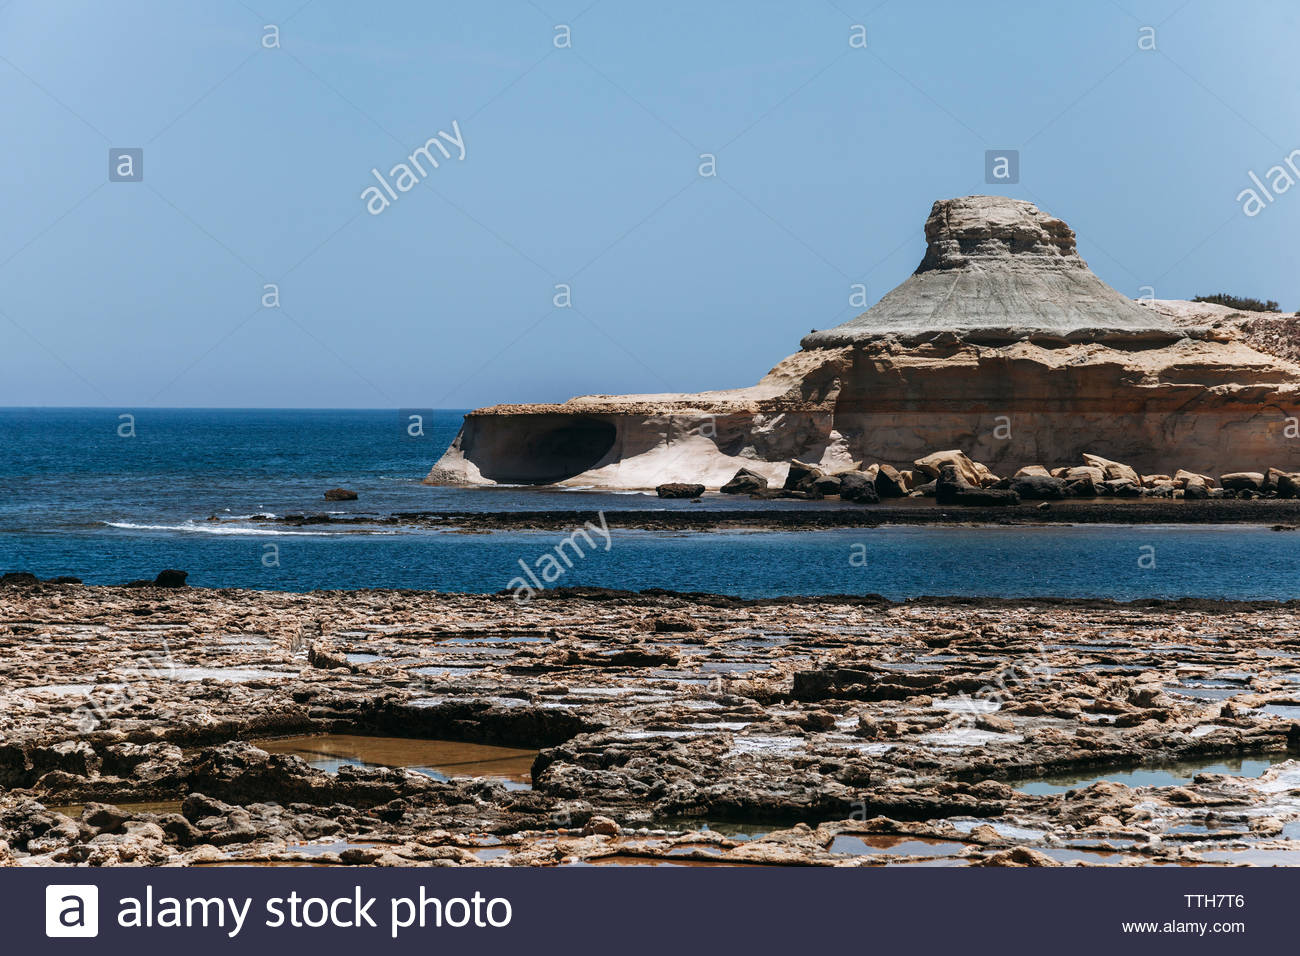 Rock formations and salt flat at coastline by sea against sky during sunny day - Stock Image